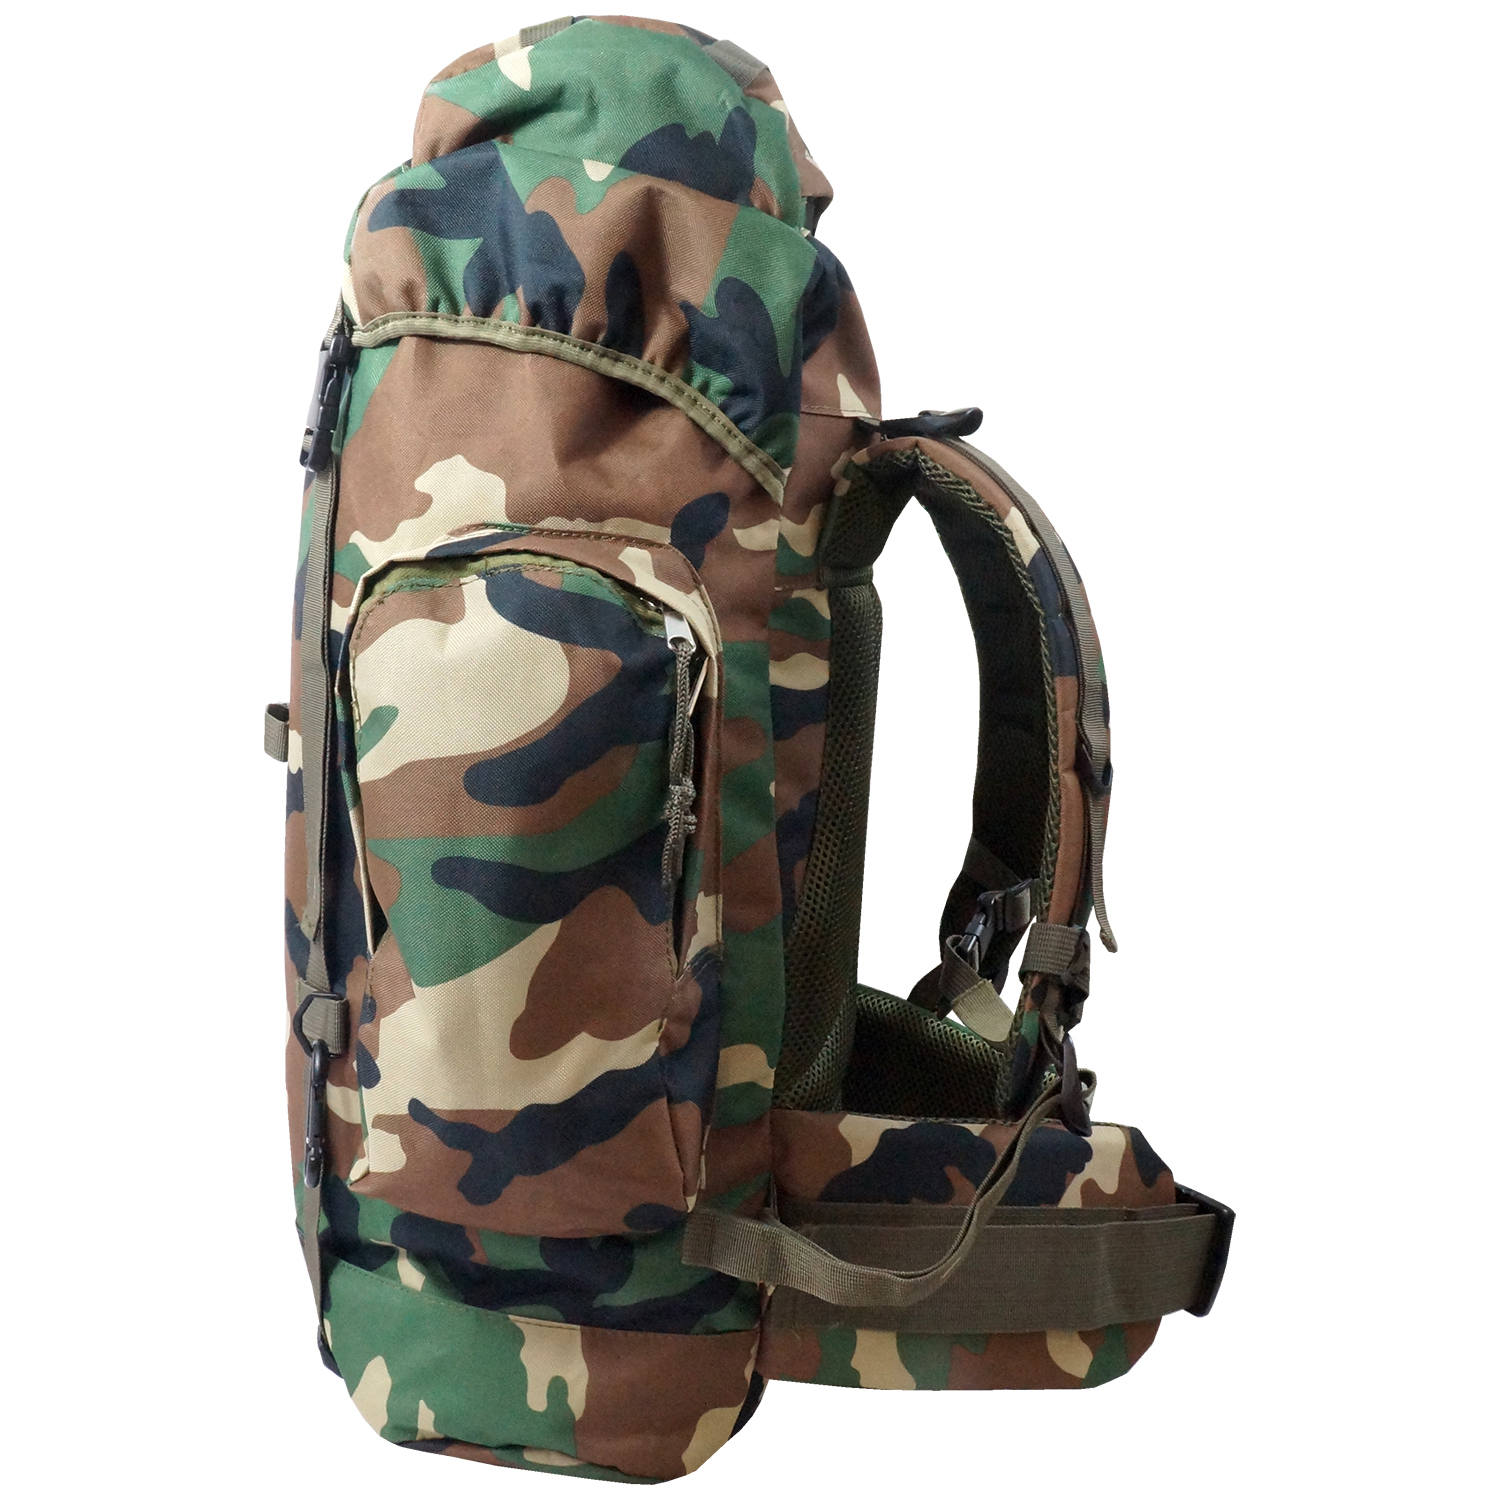 Every Day Carry Heavy Duty XL Mountaineer Hiking Day Pack ...